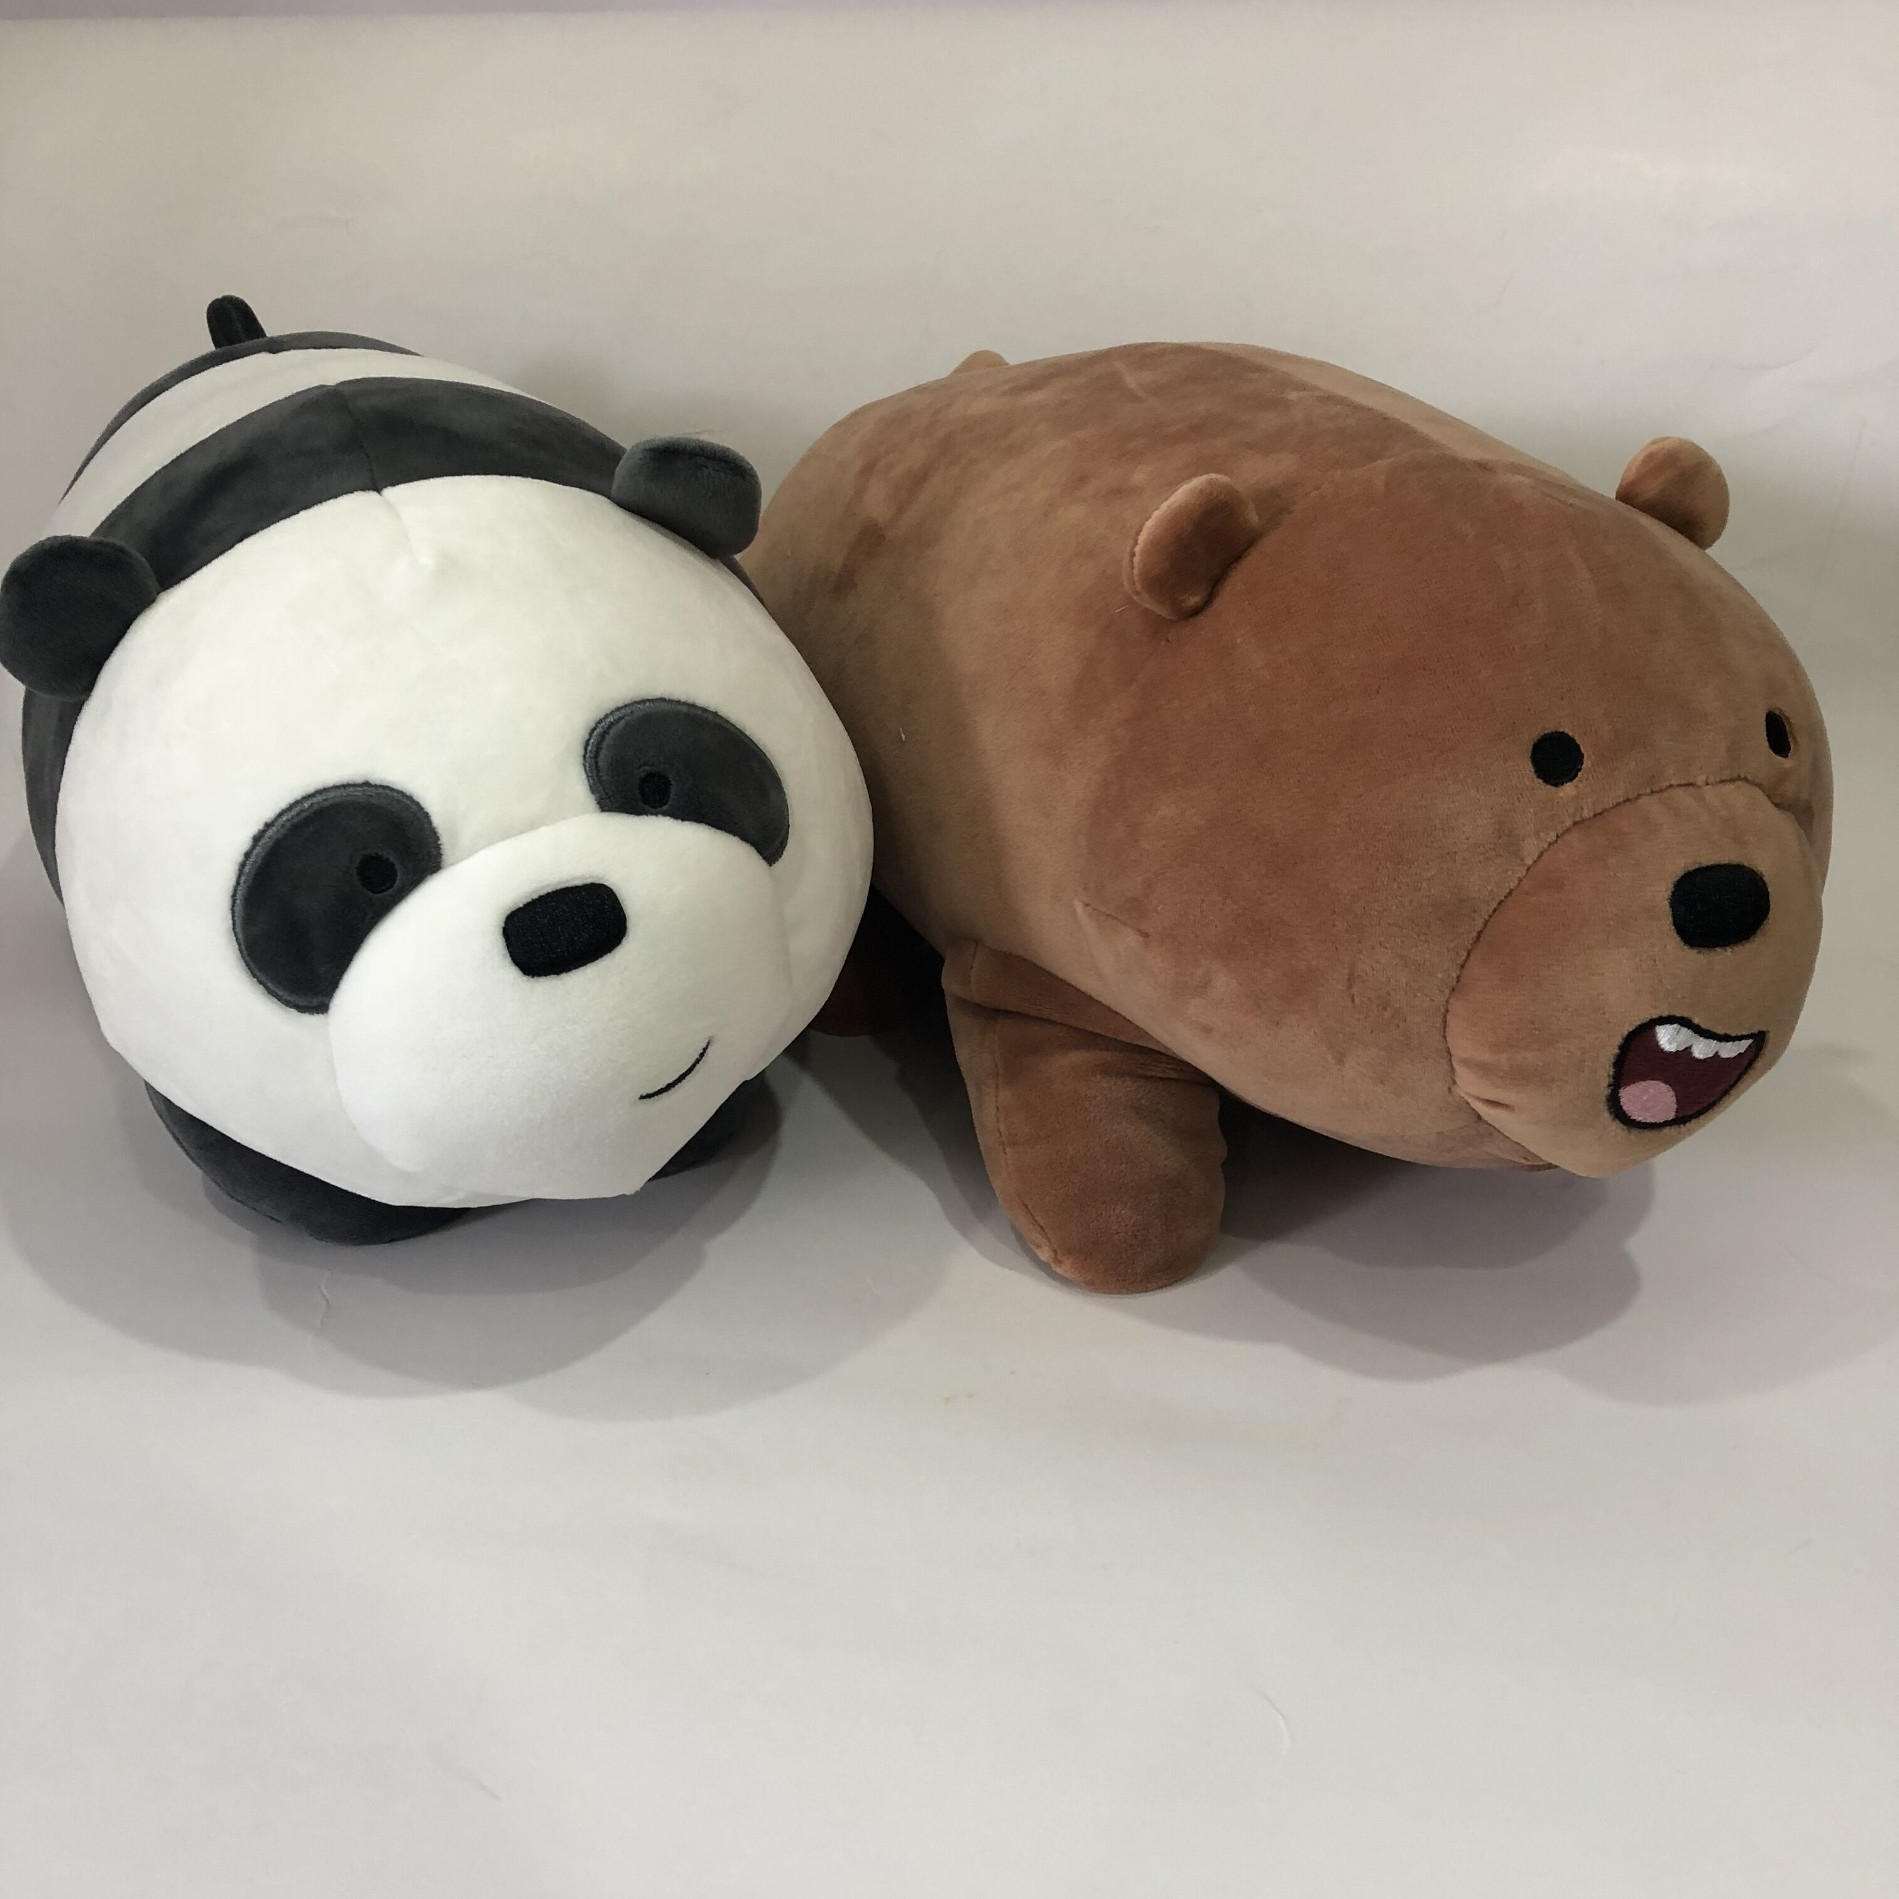 Super Soft Panda And Bear Pillow